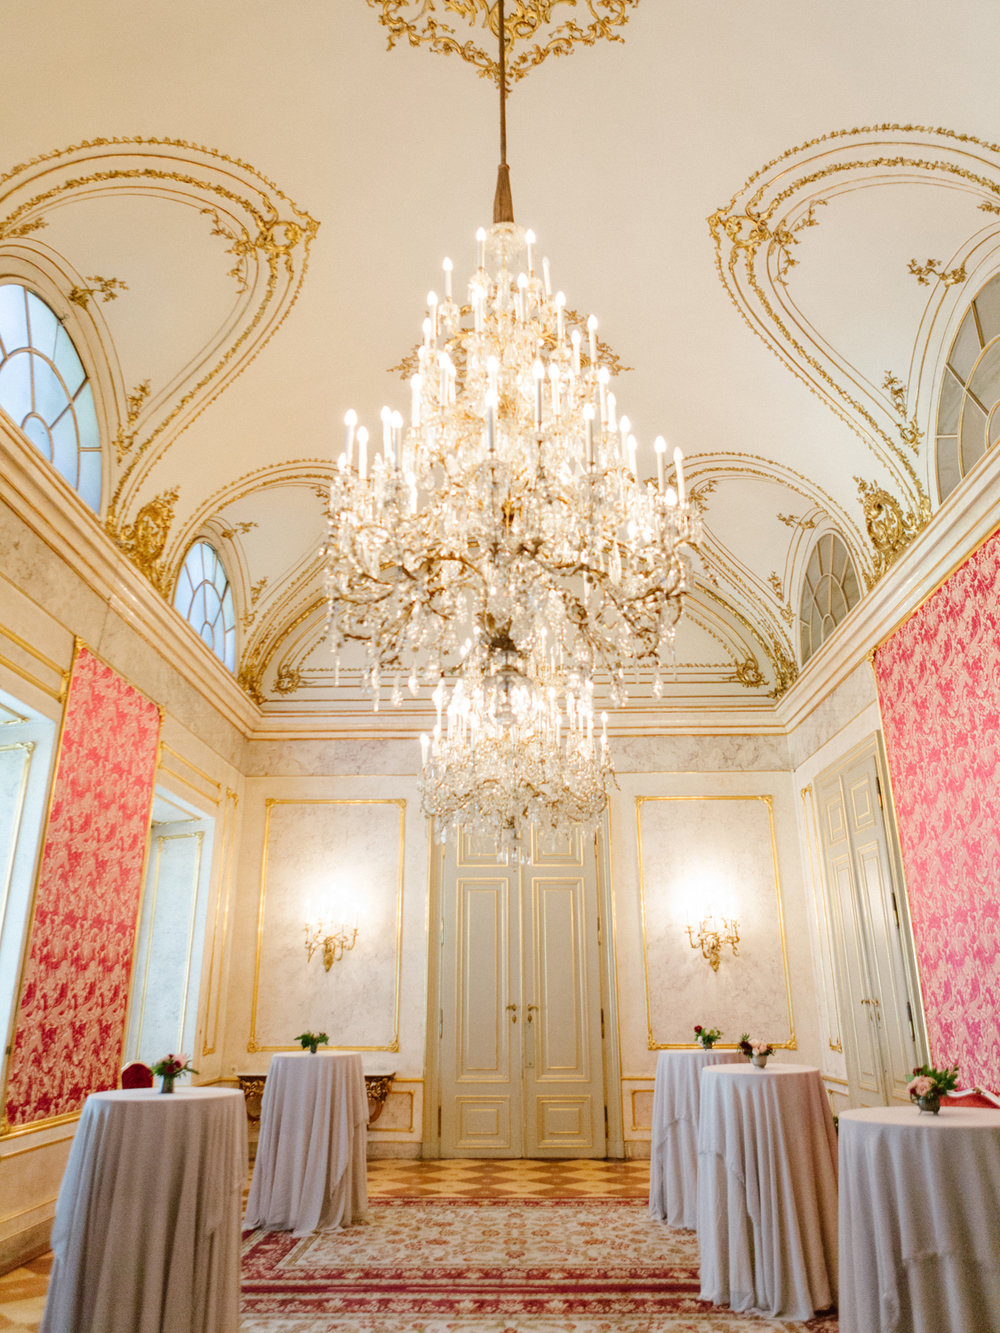 palais pallavicini wedding hotel imperial vienna wedding photographer nikol bodnarova photography 136.JPG